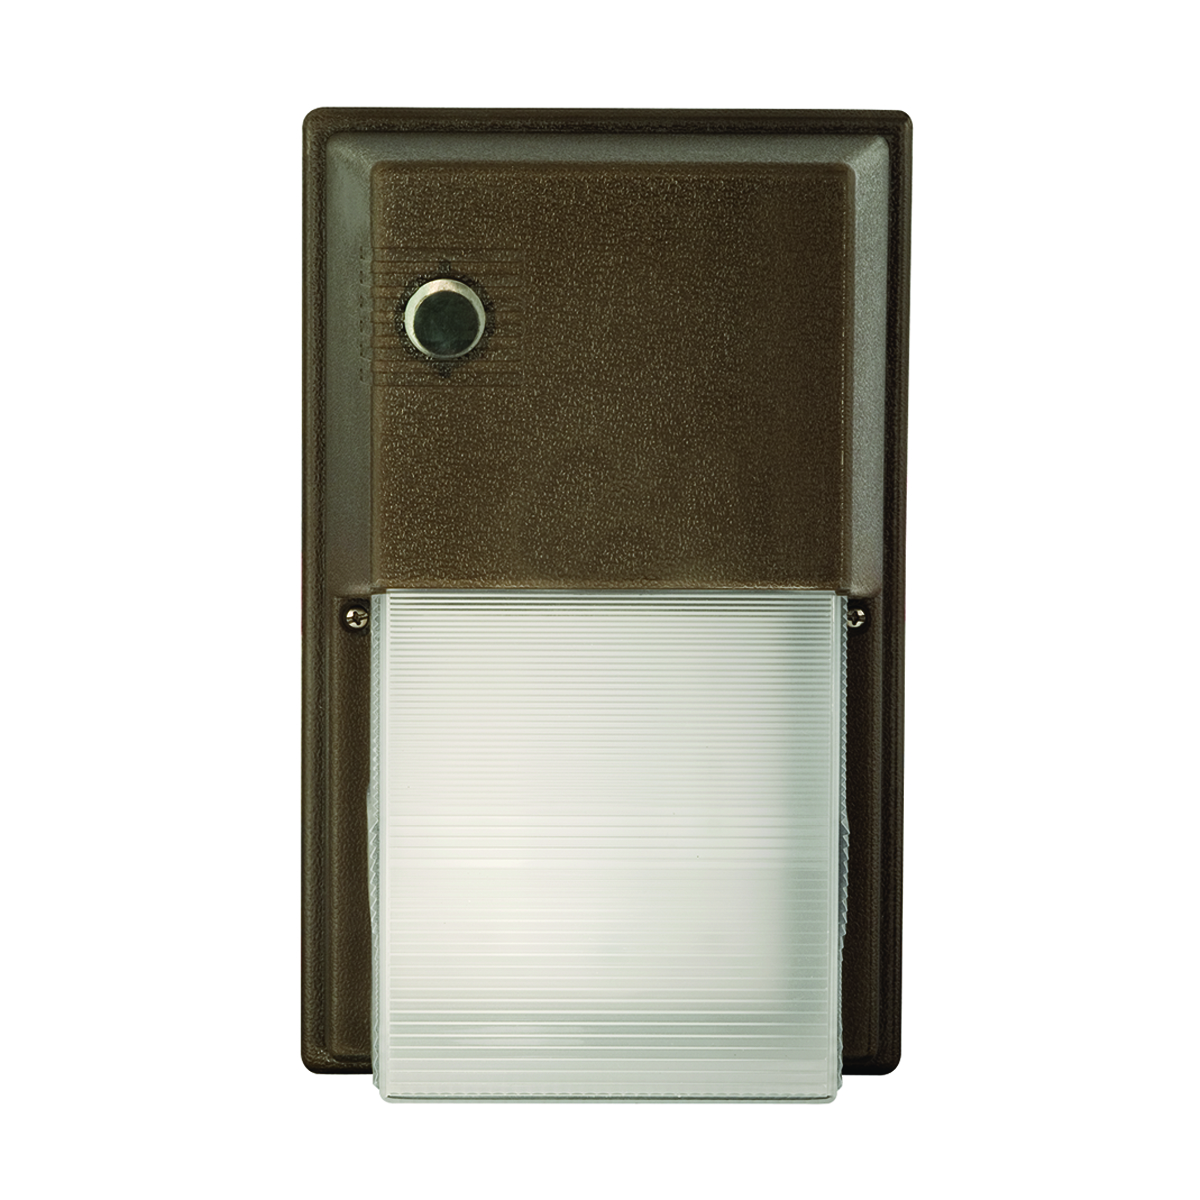 Nrg 300l Series Hubbell Outdoor Lighting